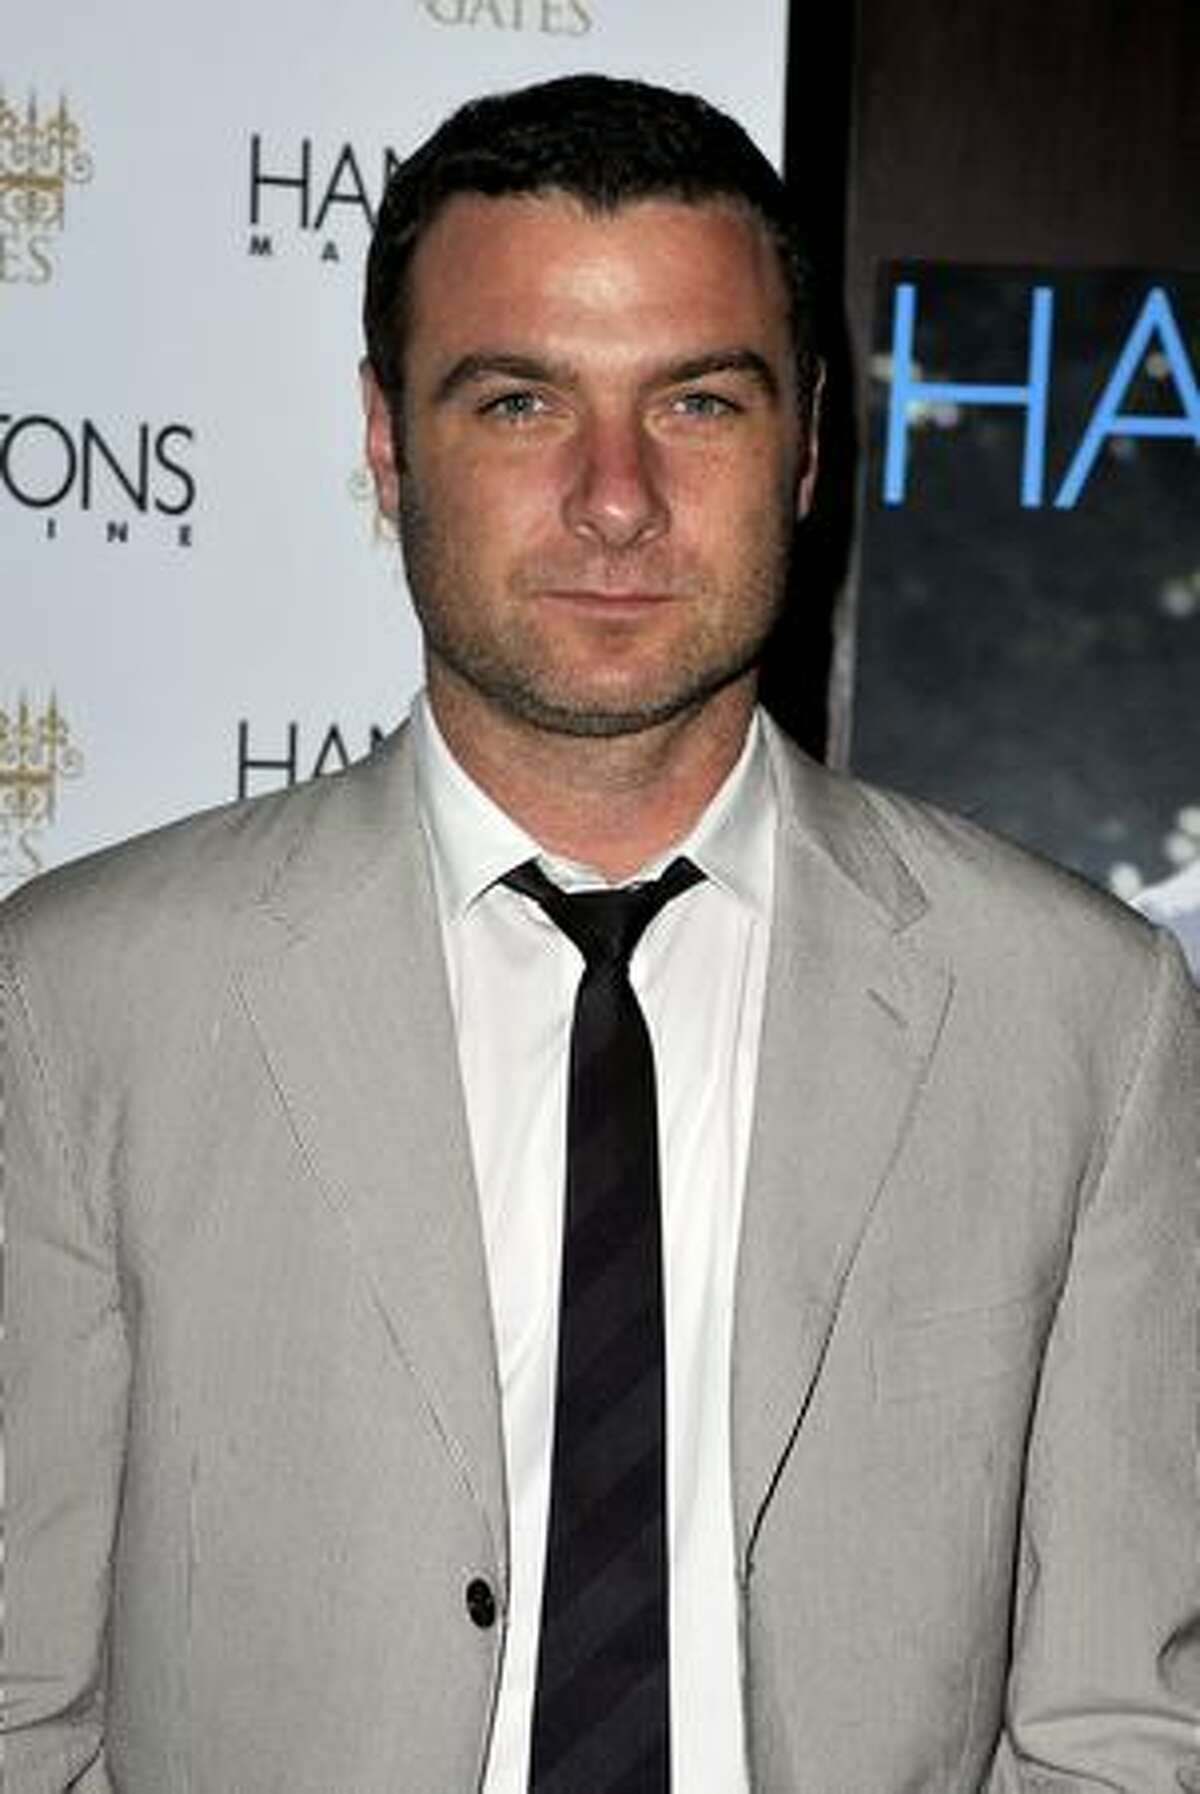 Actor Liev Schreiber attends the celebration of Hamptons Magazine's Father's Day Issue at The Gates in New York City.